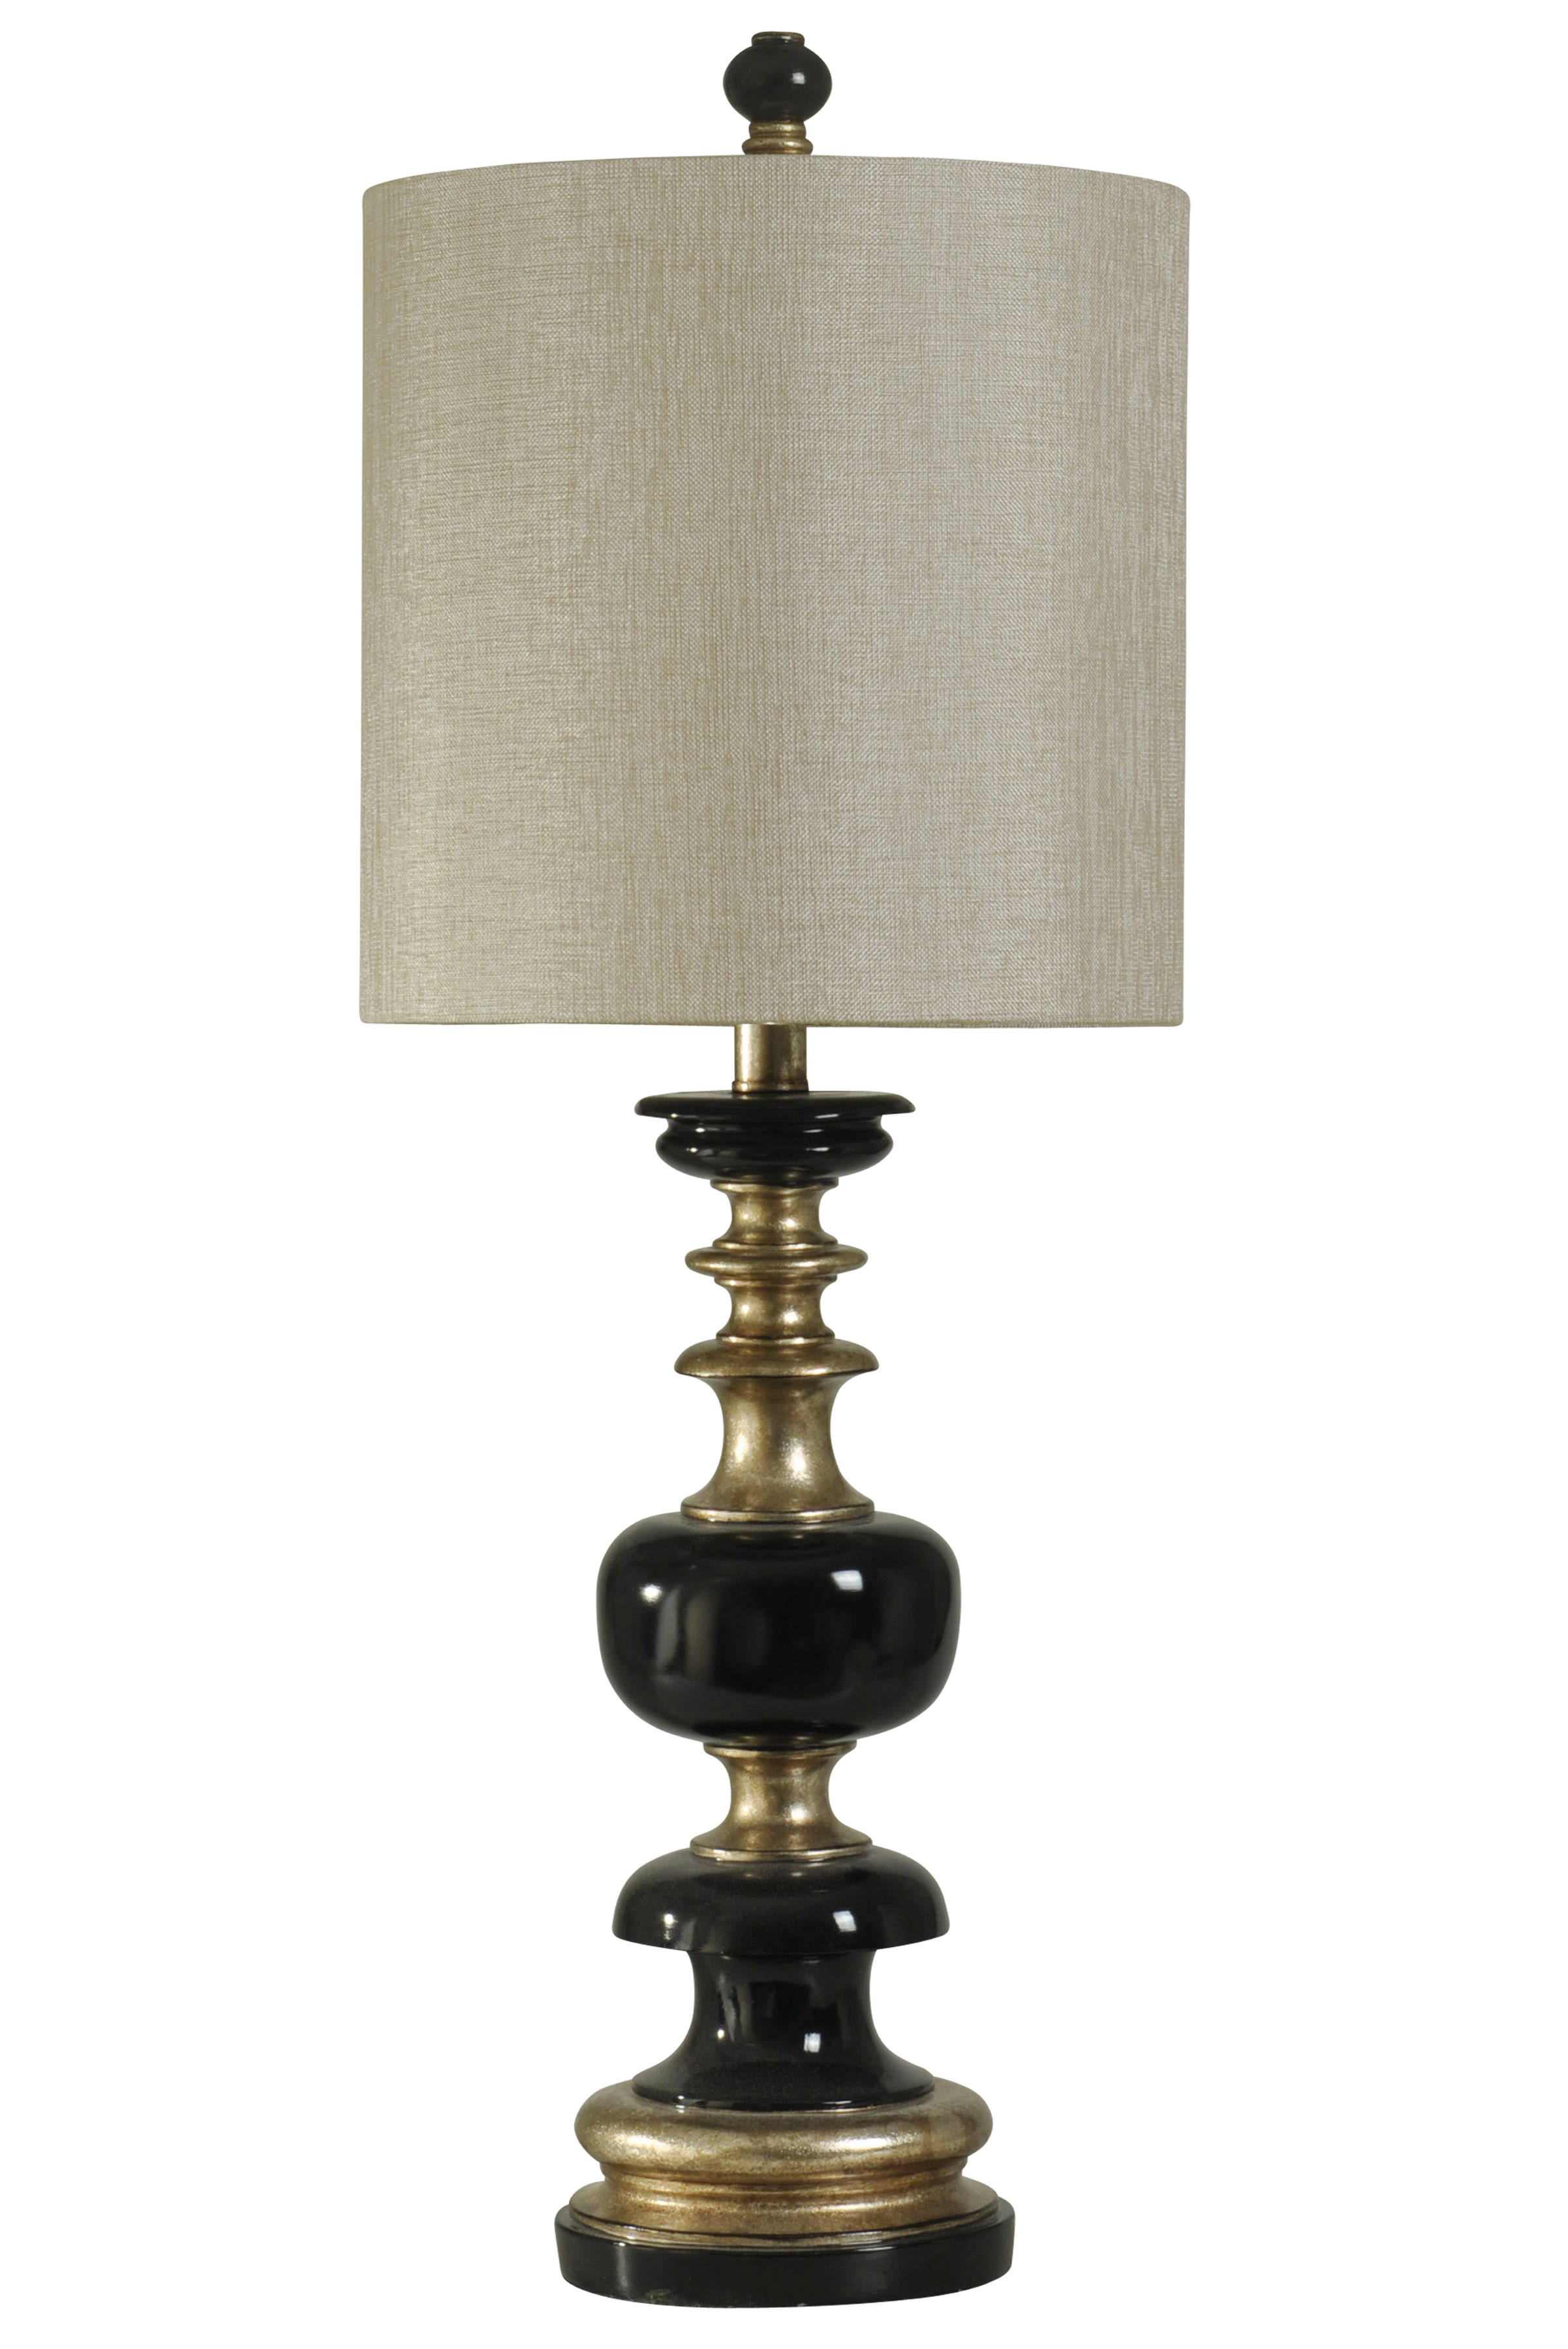 kingston table lamp black and gold finish white hardback fabric shade. Black Bedroom Furniture Sets. Home Design Ideas